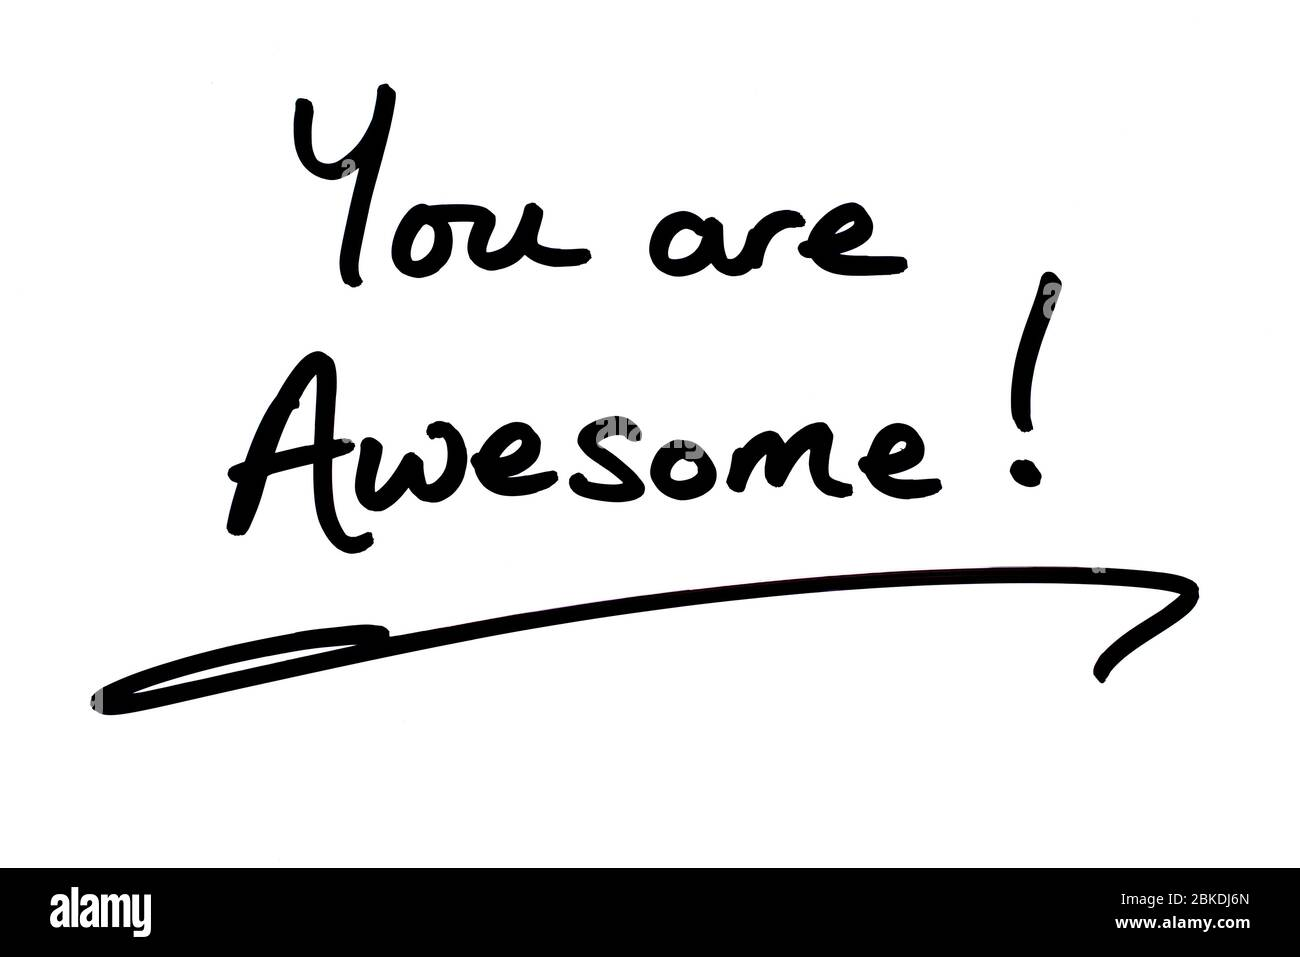 You are Awesome! handwritten on a white background. Stock Photo